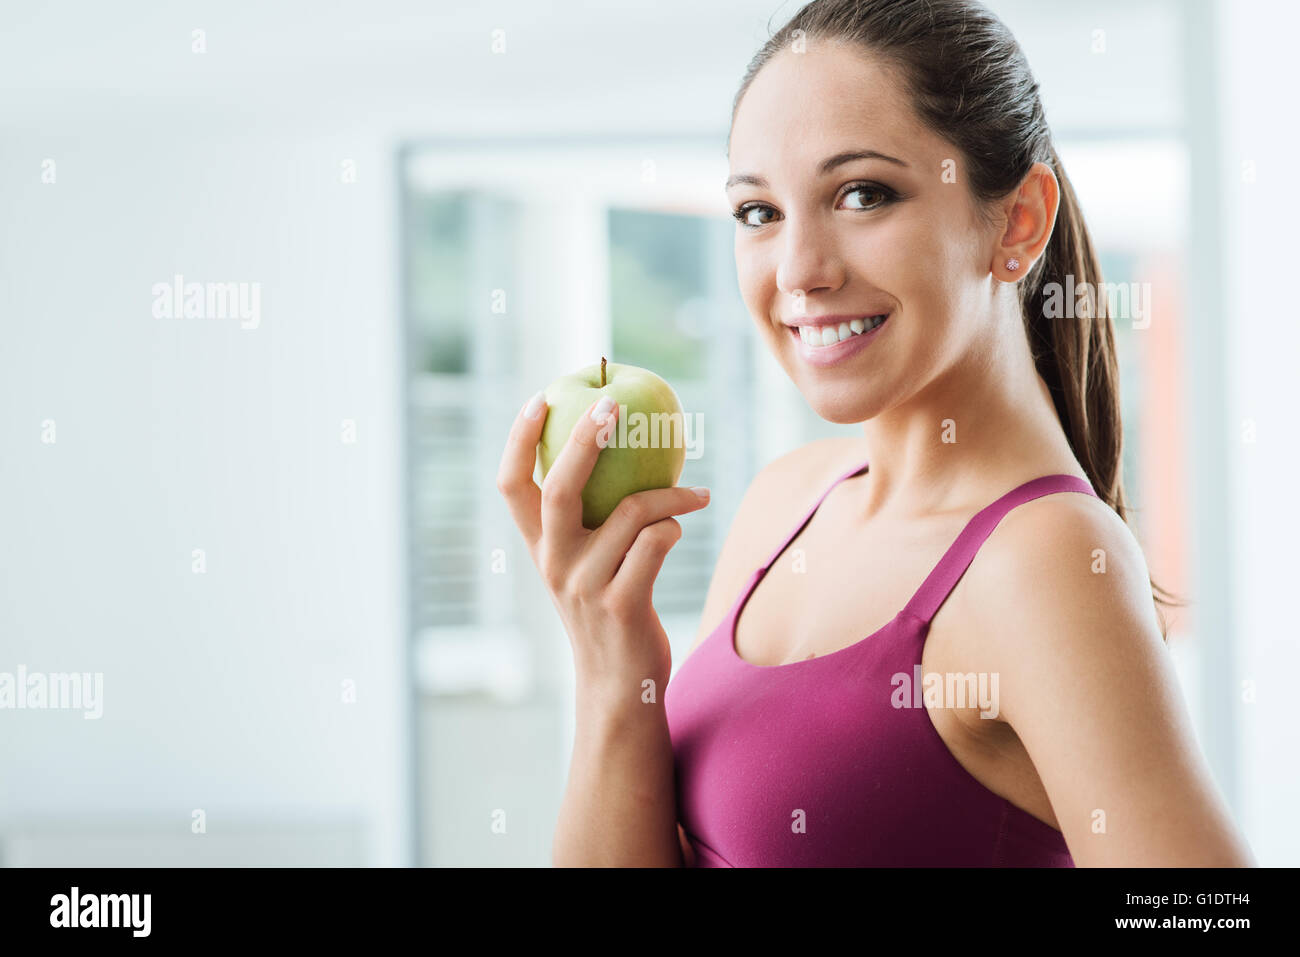 Young slim woman holding an apple and smiling at camera, healthy eating and weight loss concept - Stock Image